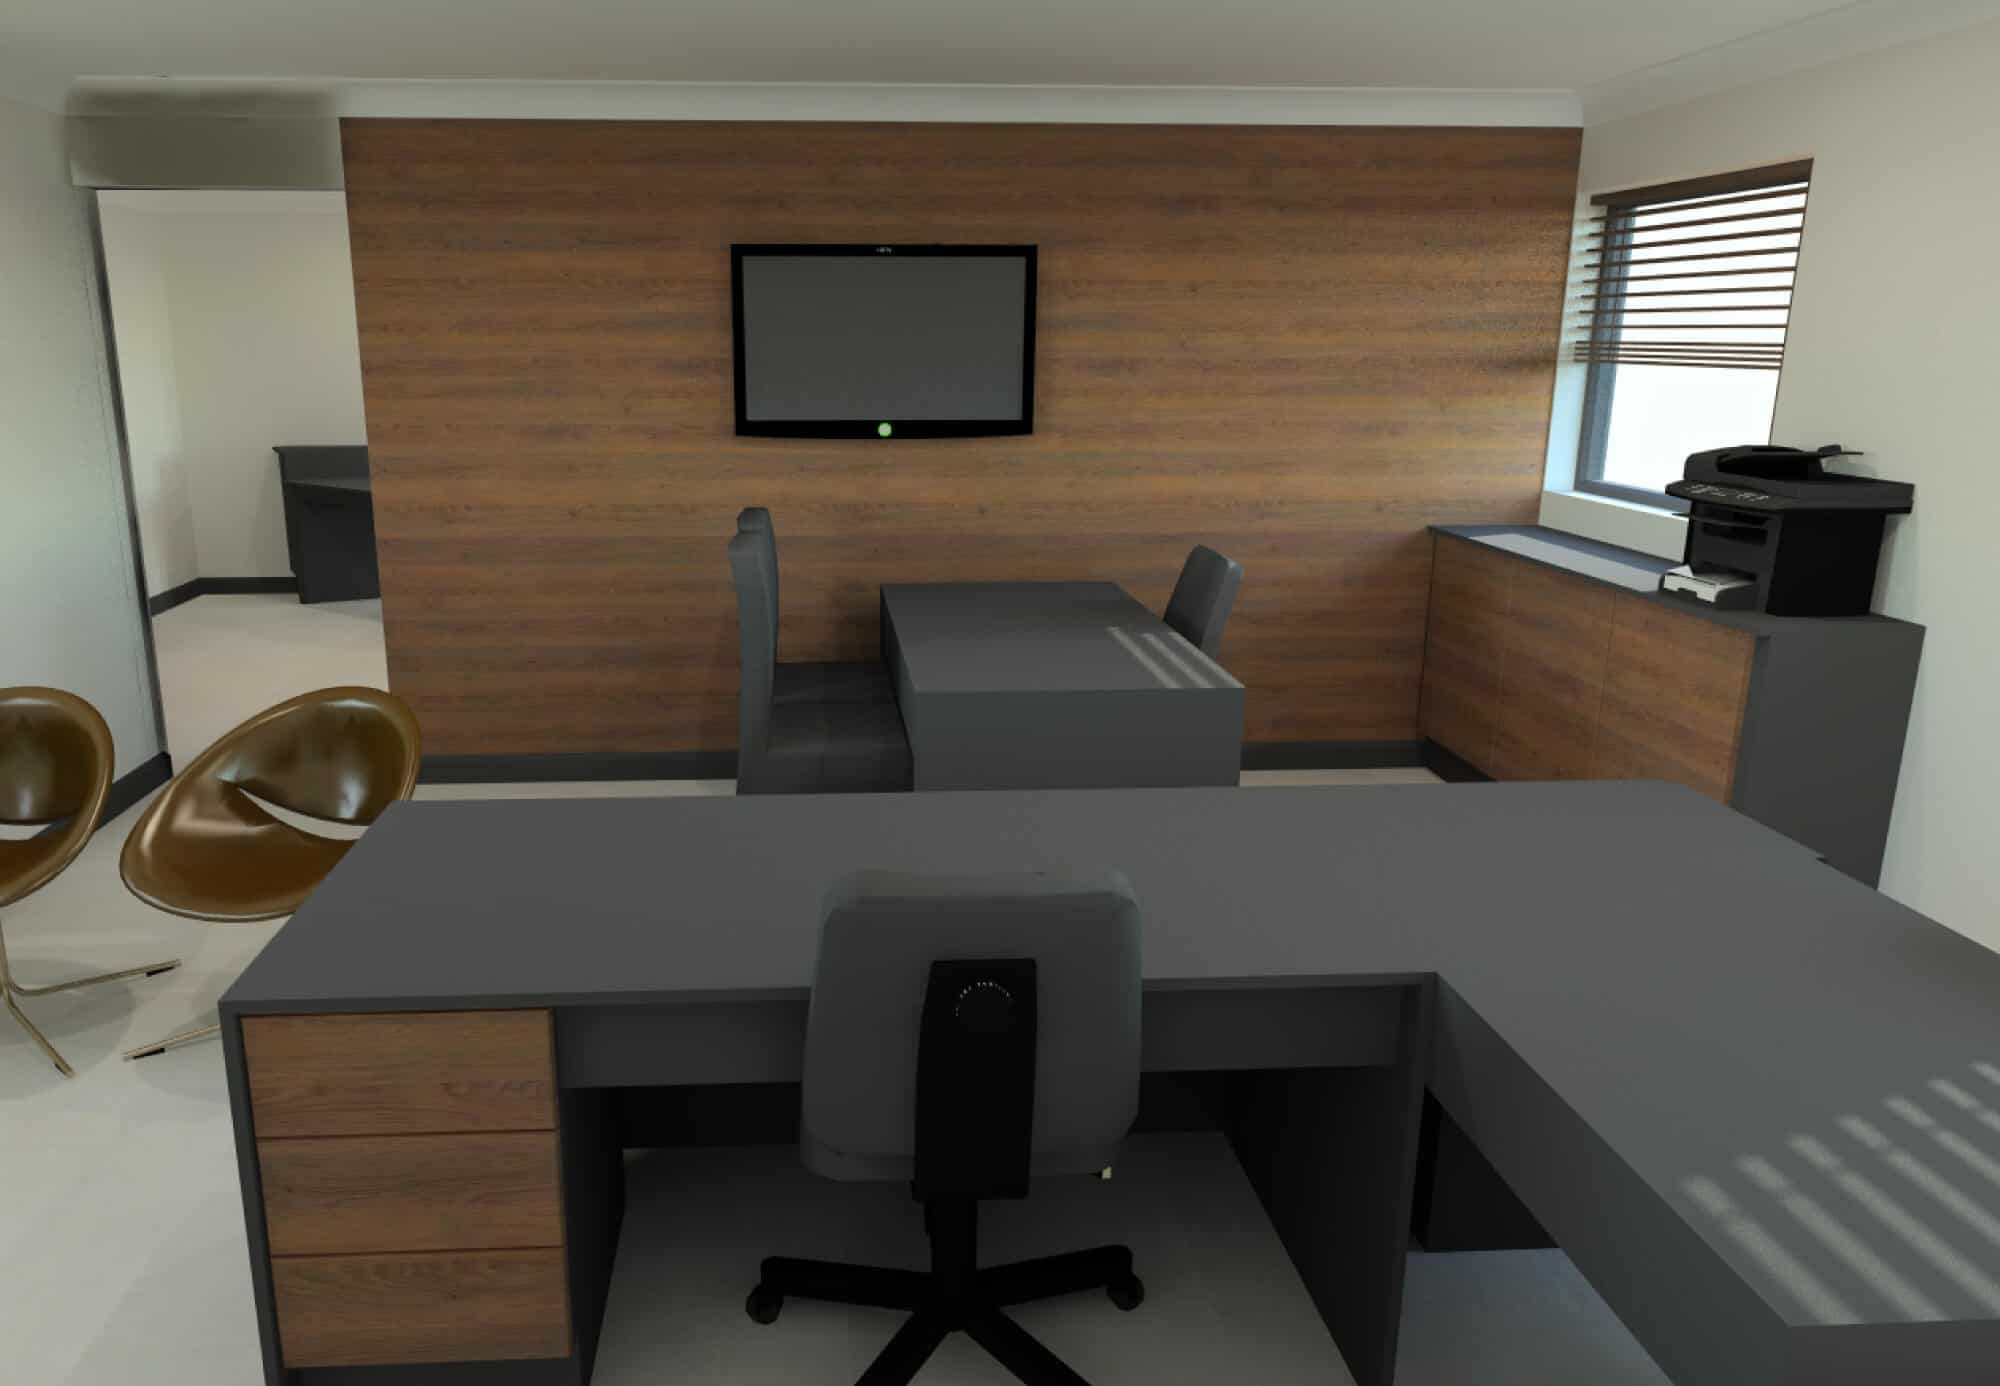 Commercial Office / Meeting Room Design